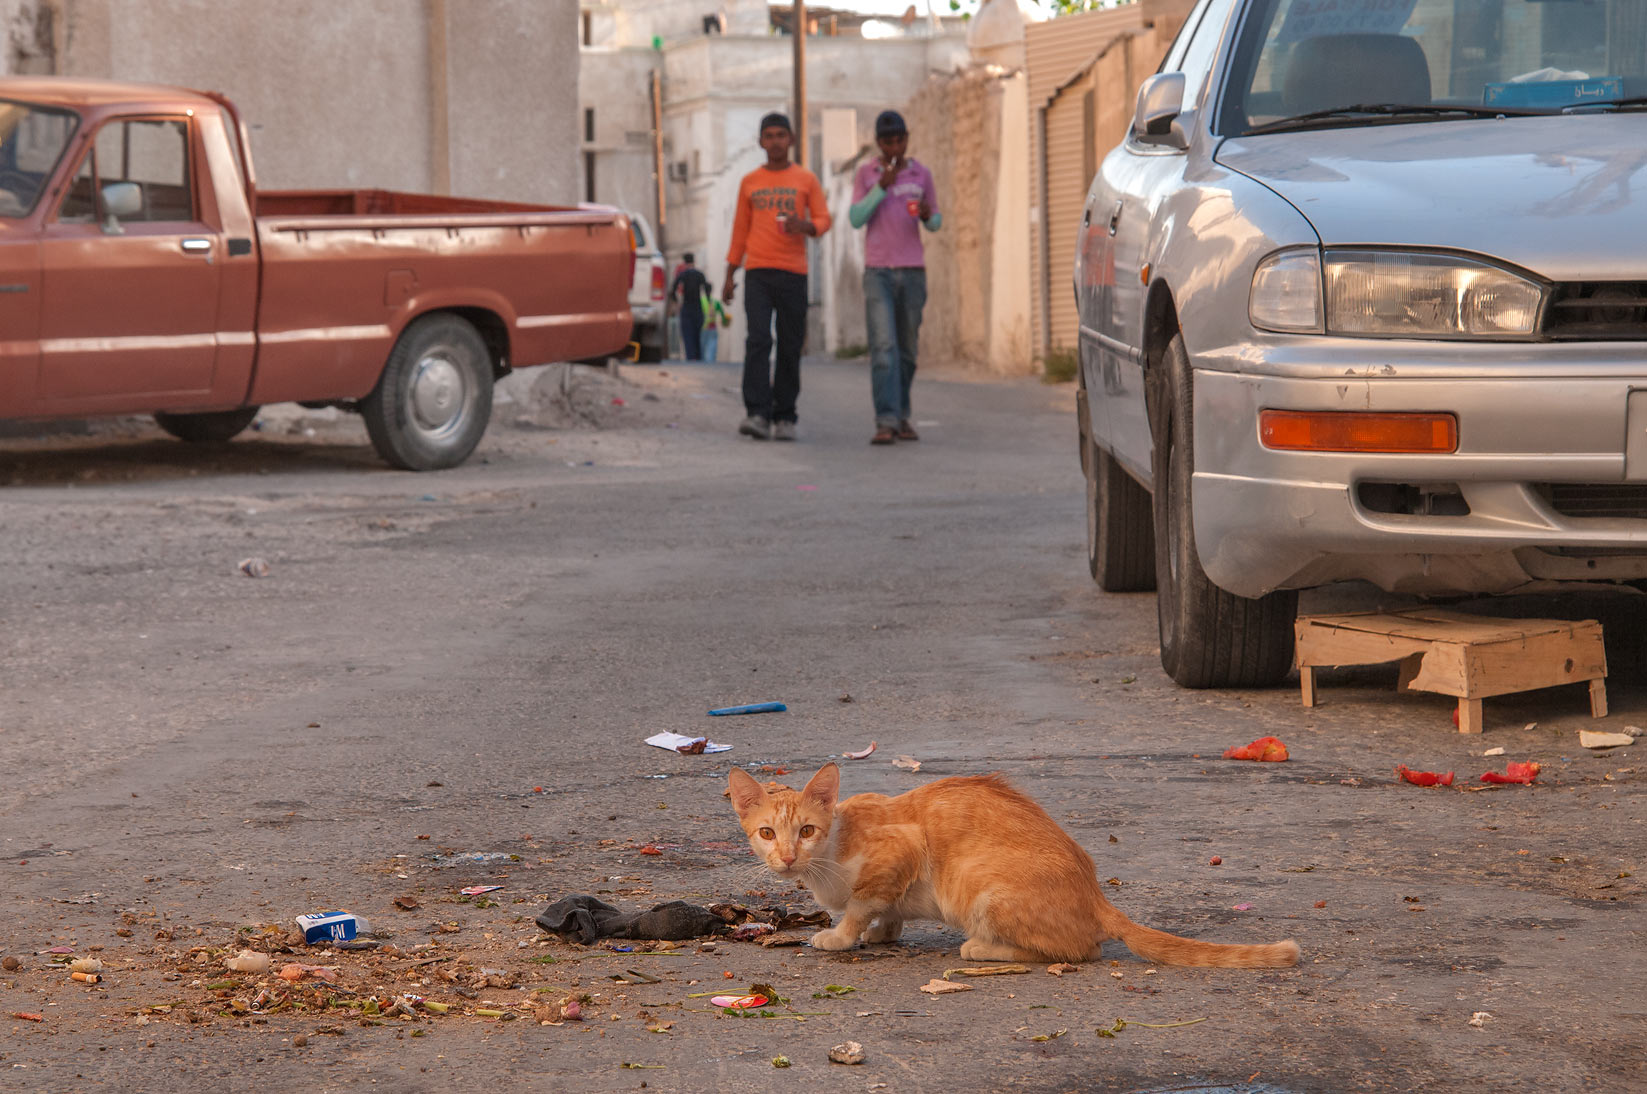 Brown cat at breakfast on Al Jassasiya St., Musheirib area. Doha, Qatar